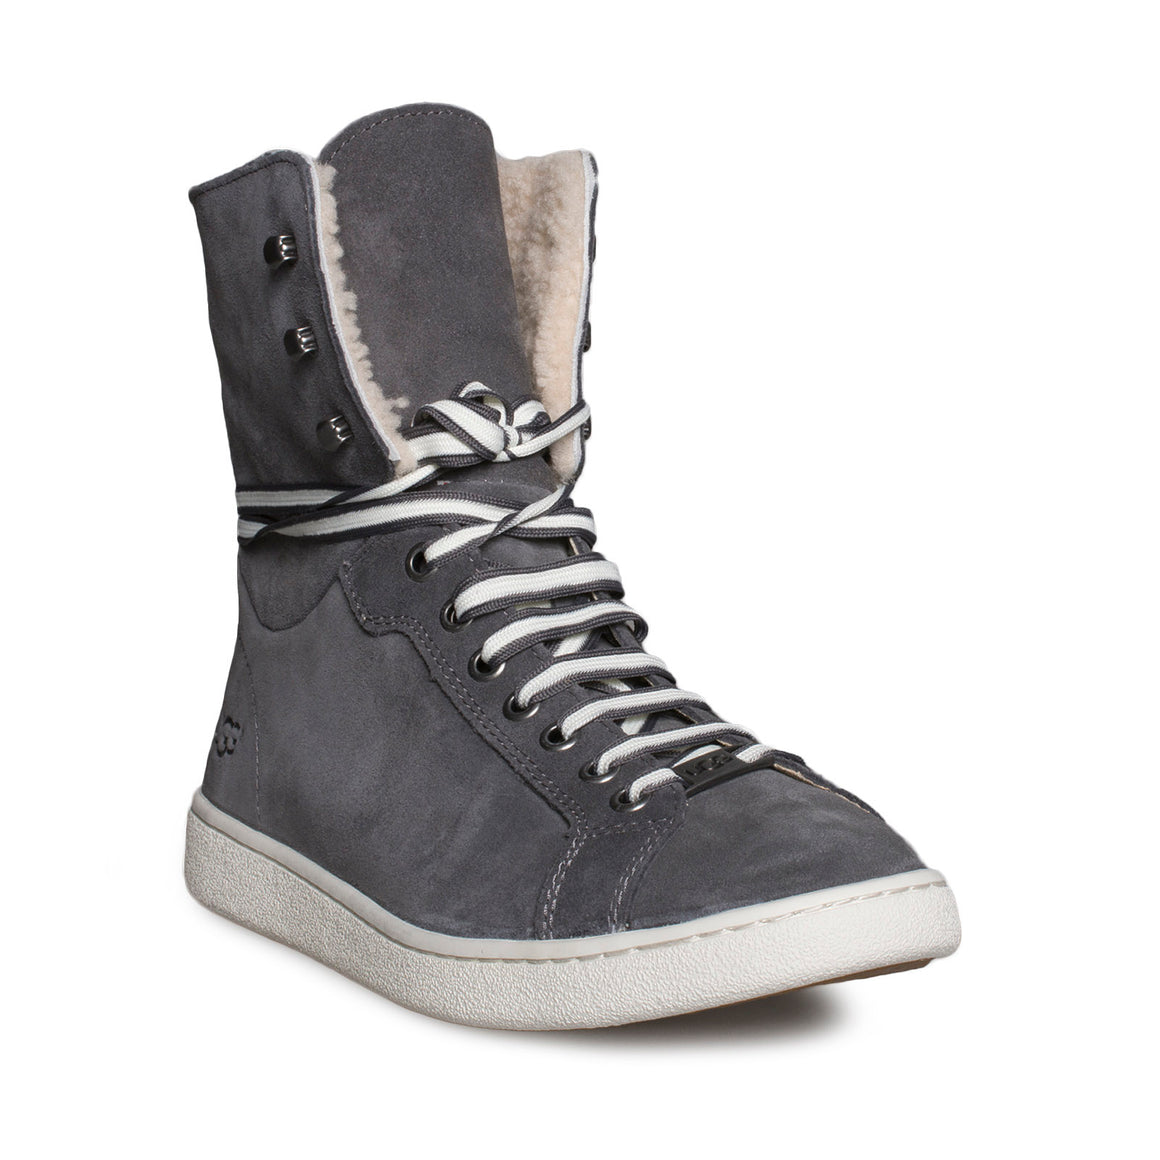 UGG Starlyn Charcoal Sneakers - Women's